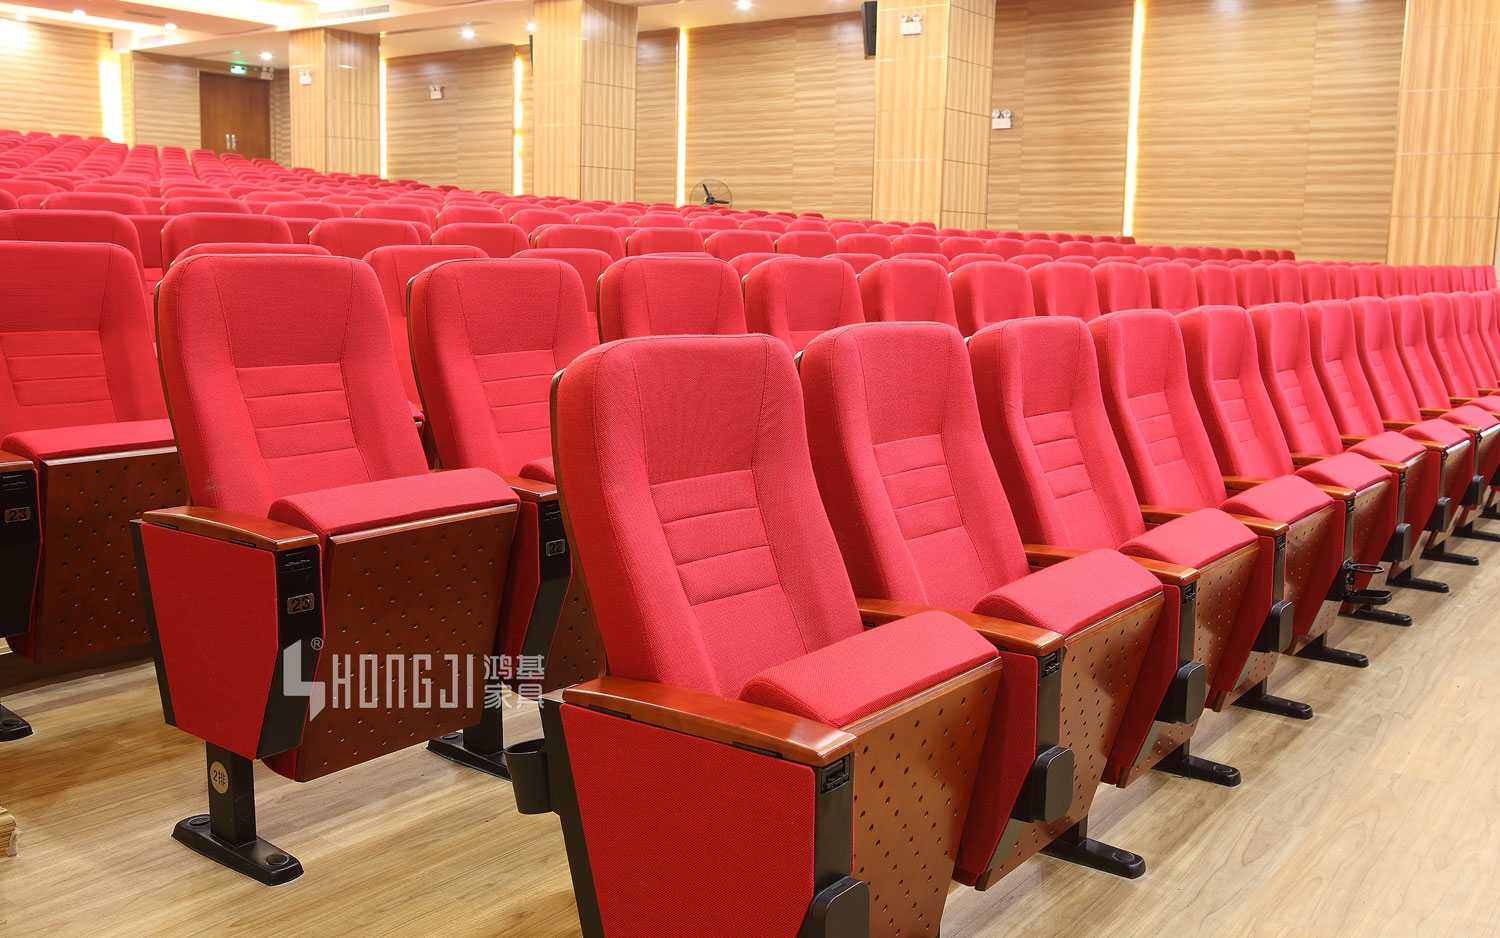 HONGJI excellent auditorium seating standards supplier for office furniture-10